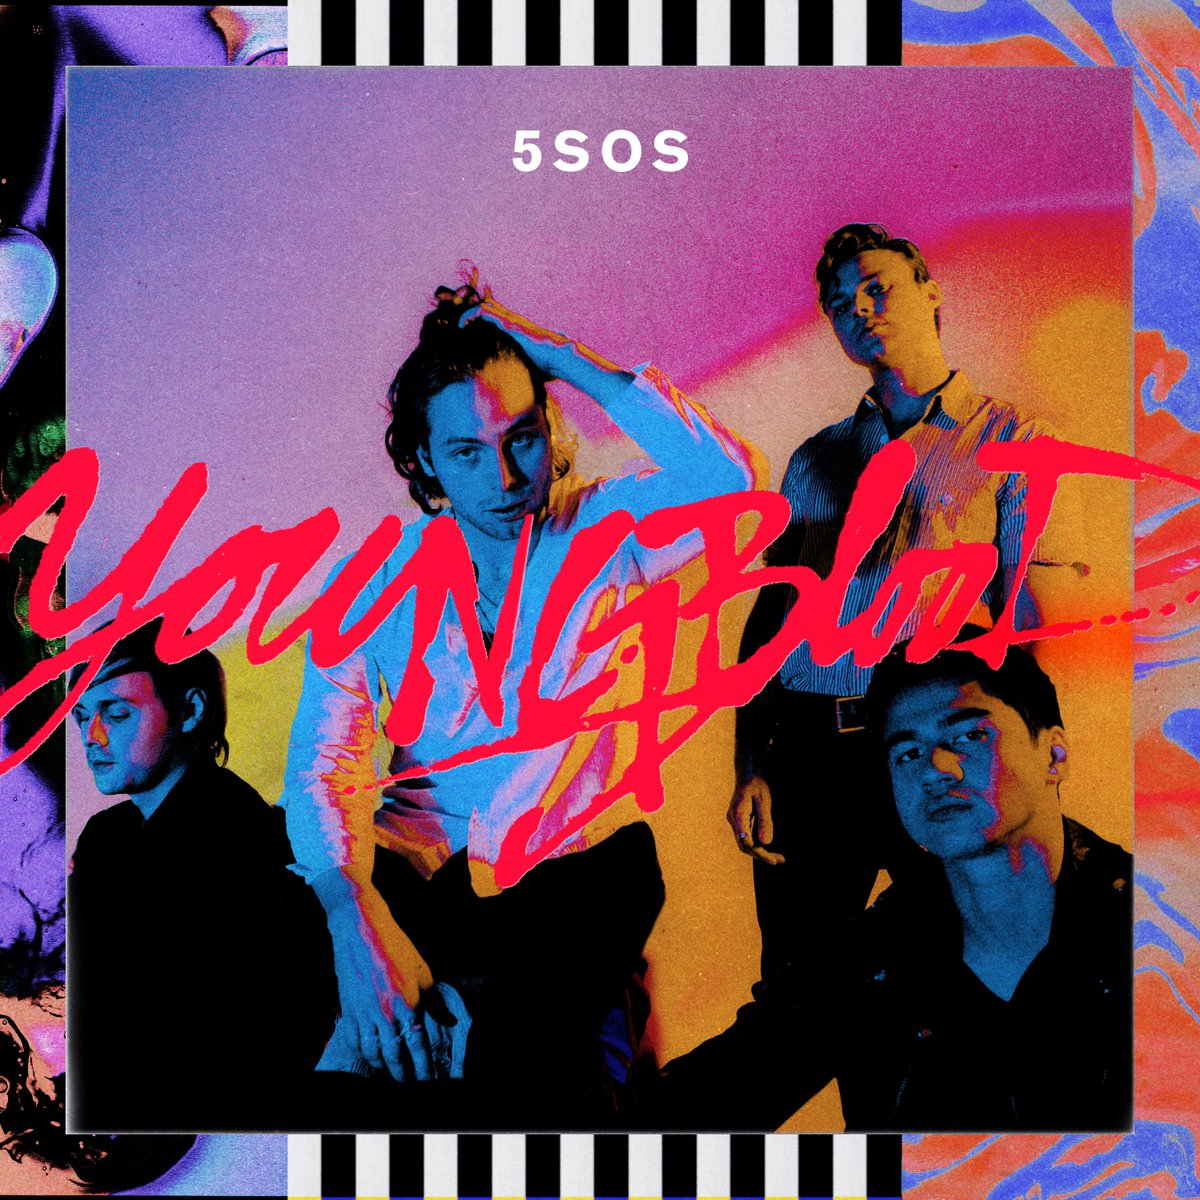 Our album YOUNGBLOOD will be released on June 22nd. The pre-order goes live this Thursday x https://t.co/XhnNb1b0Vn